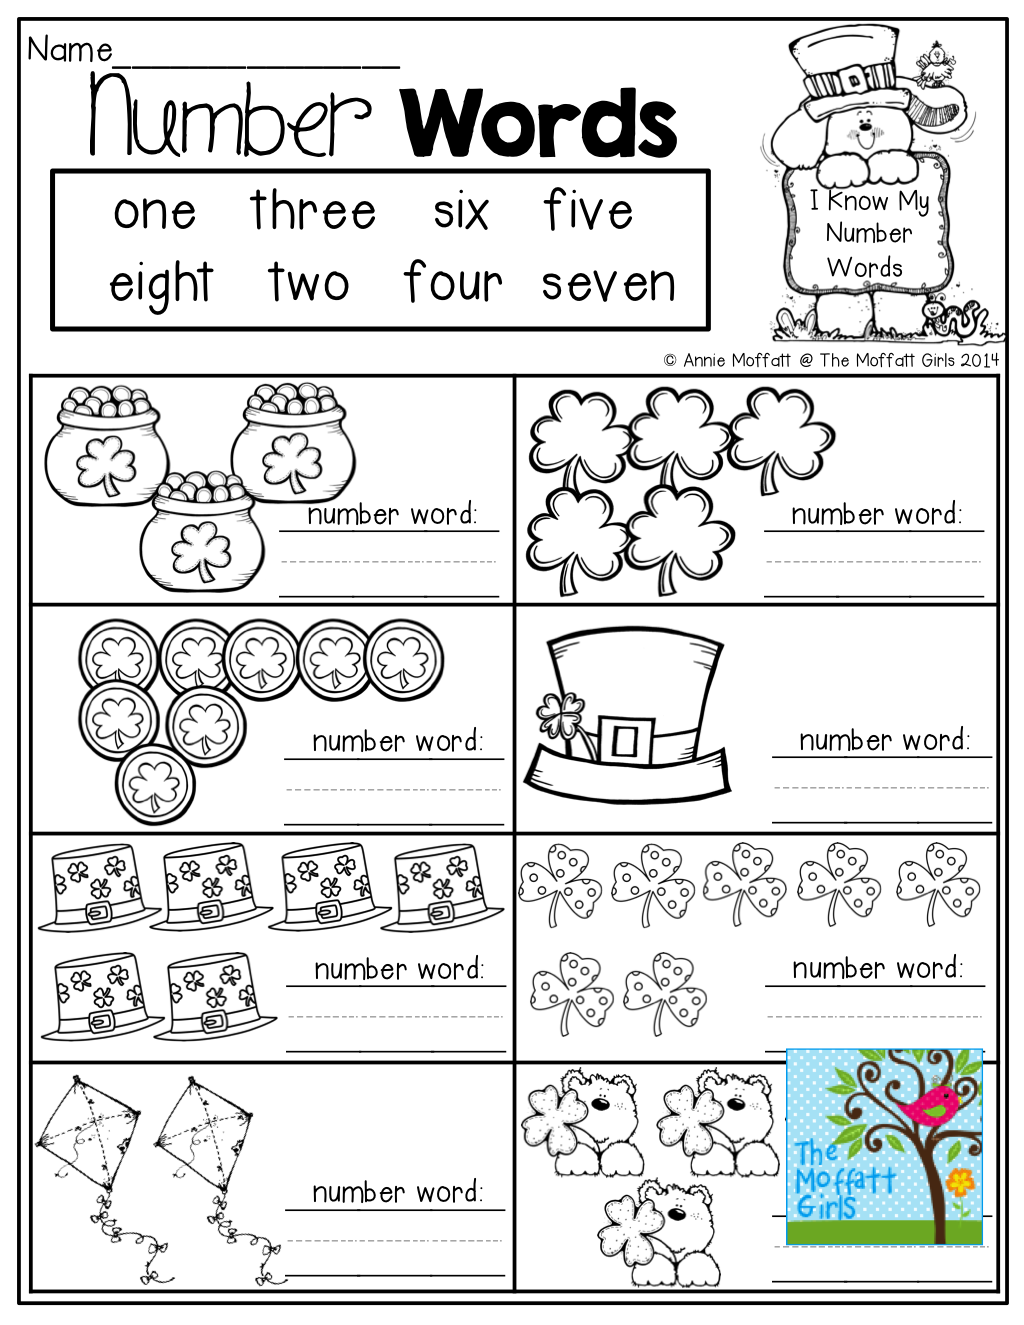 Number Word Practice Count The Items And Write The Number Words